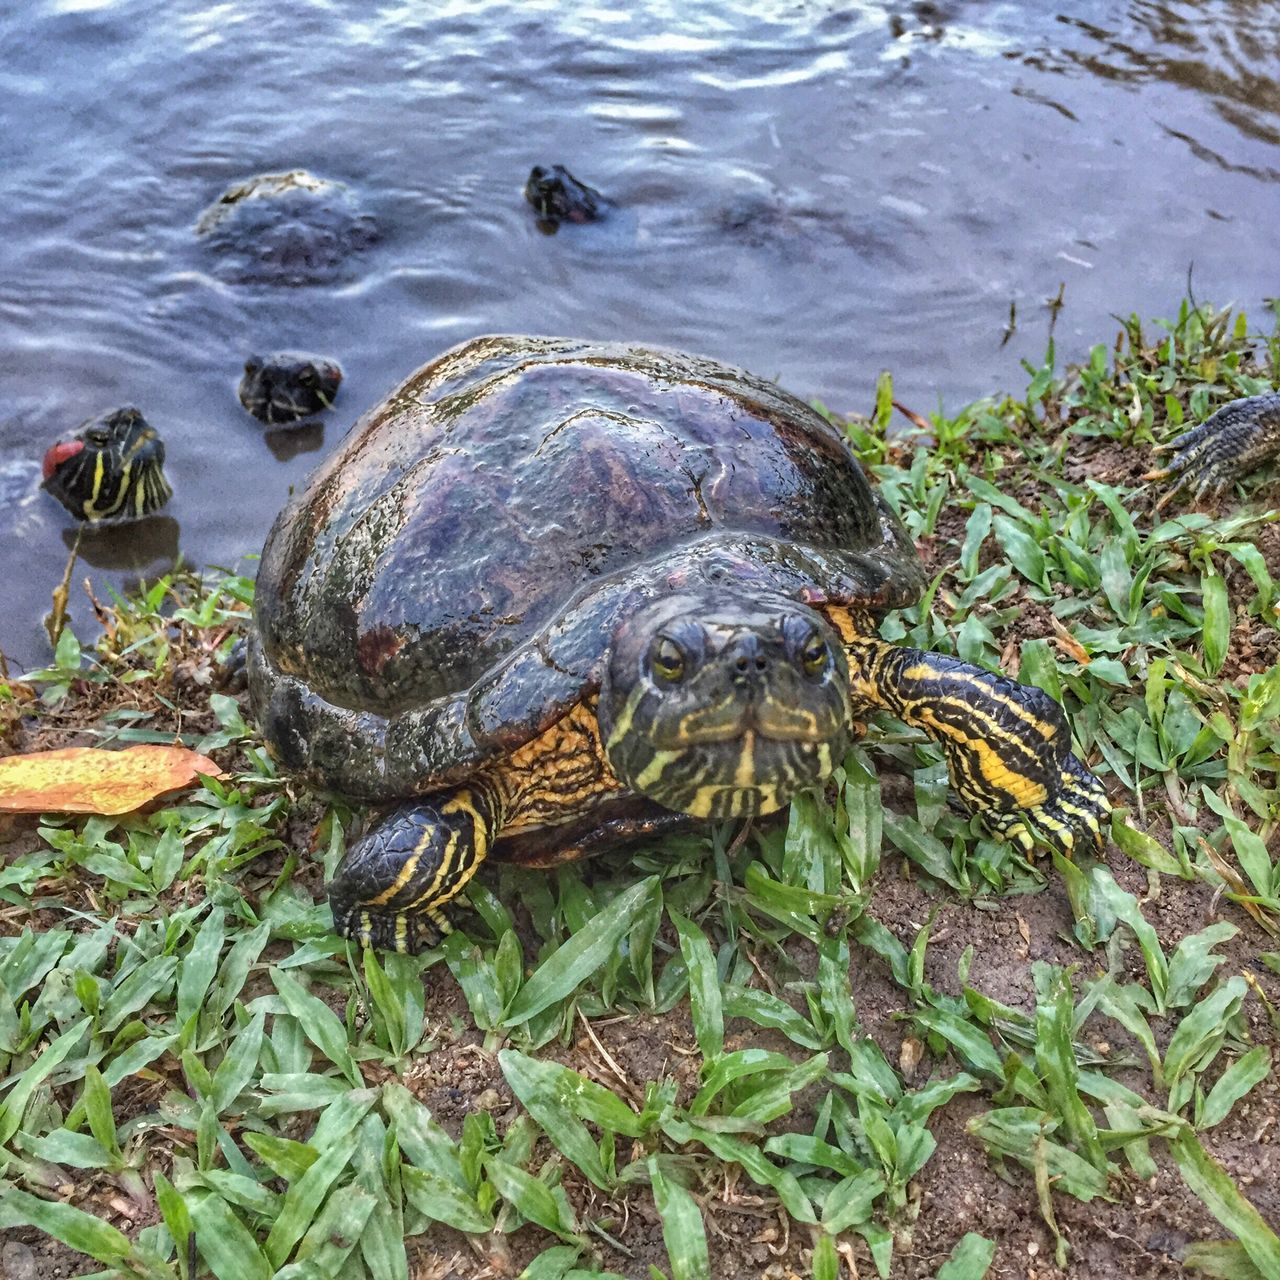 are you looking for trouble? Reptile Animal Themes Turtle Animals In The Wild Tortoise Shell Water High Angle View Tortoise Animal Wildlife Outdoors Nature Sea Turtle No People Day Beauty In Nature Sea Life